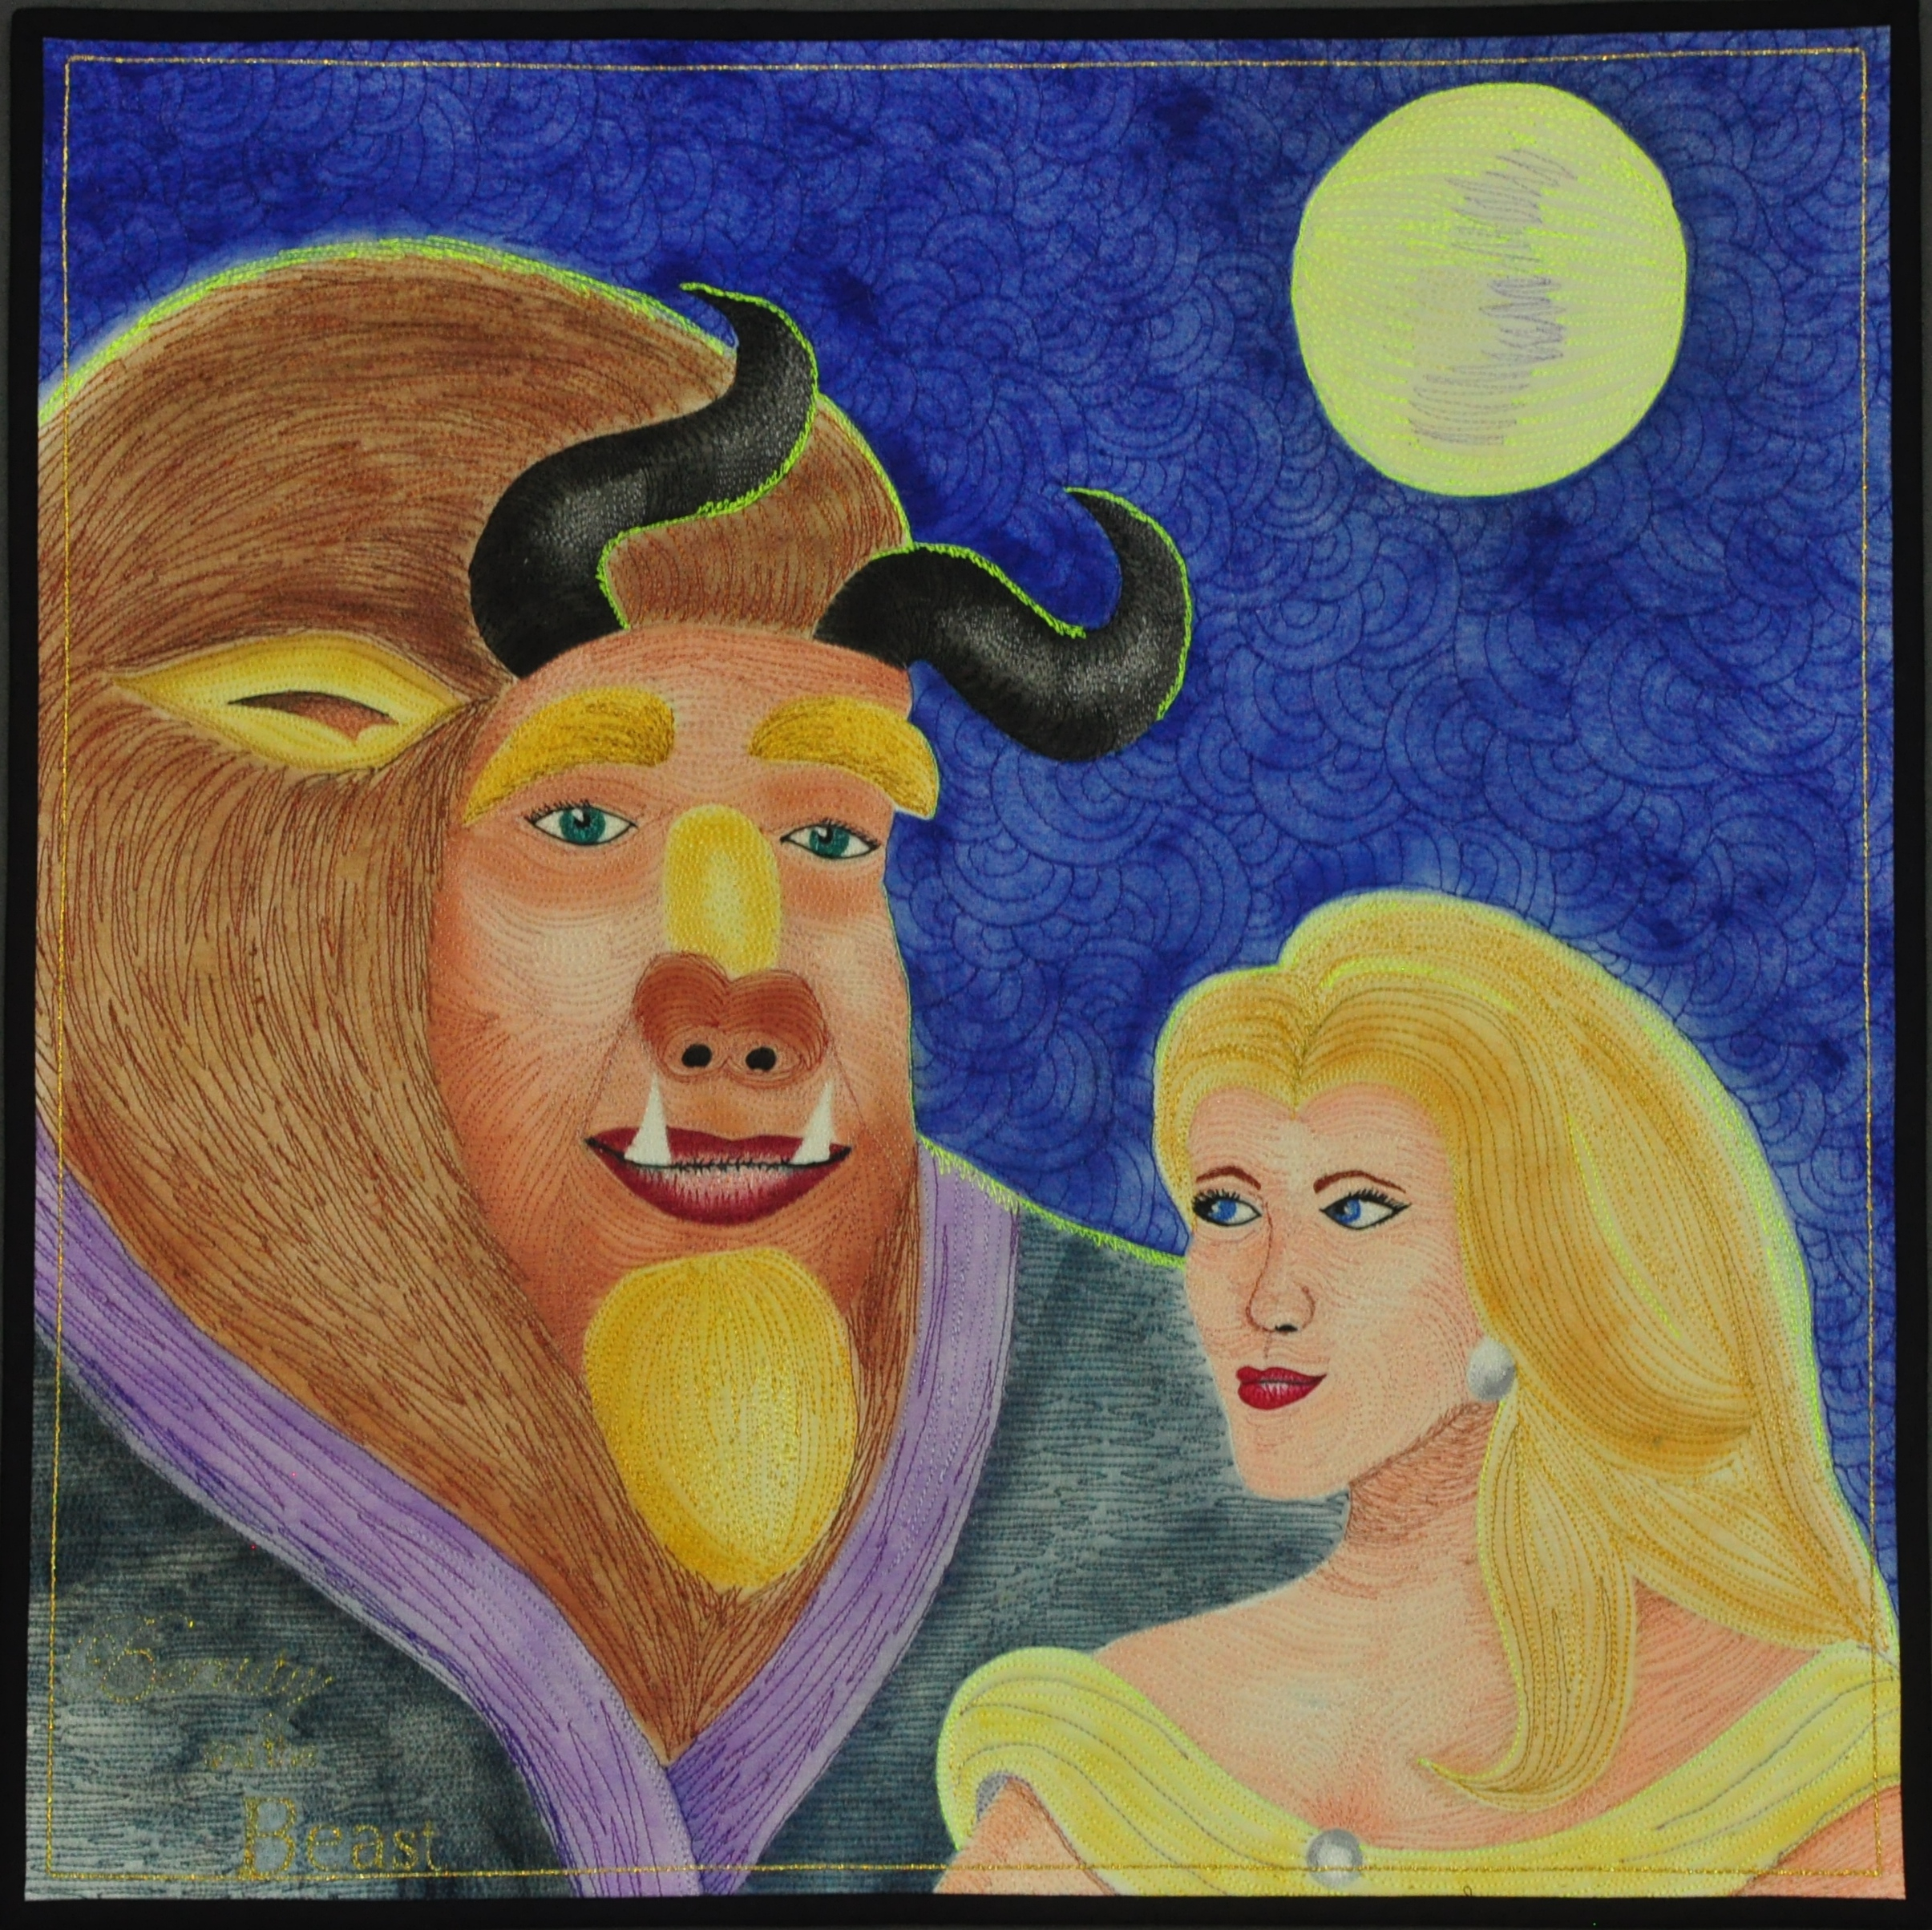 Beauty and the Beast (Sept 2015)